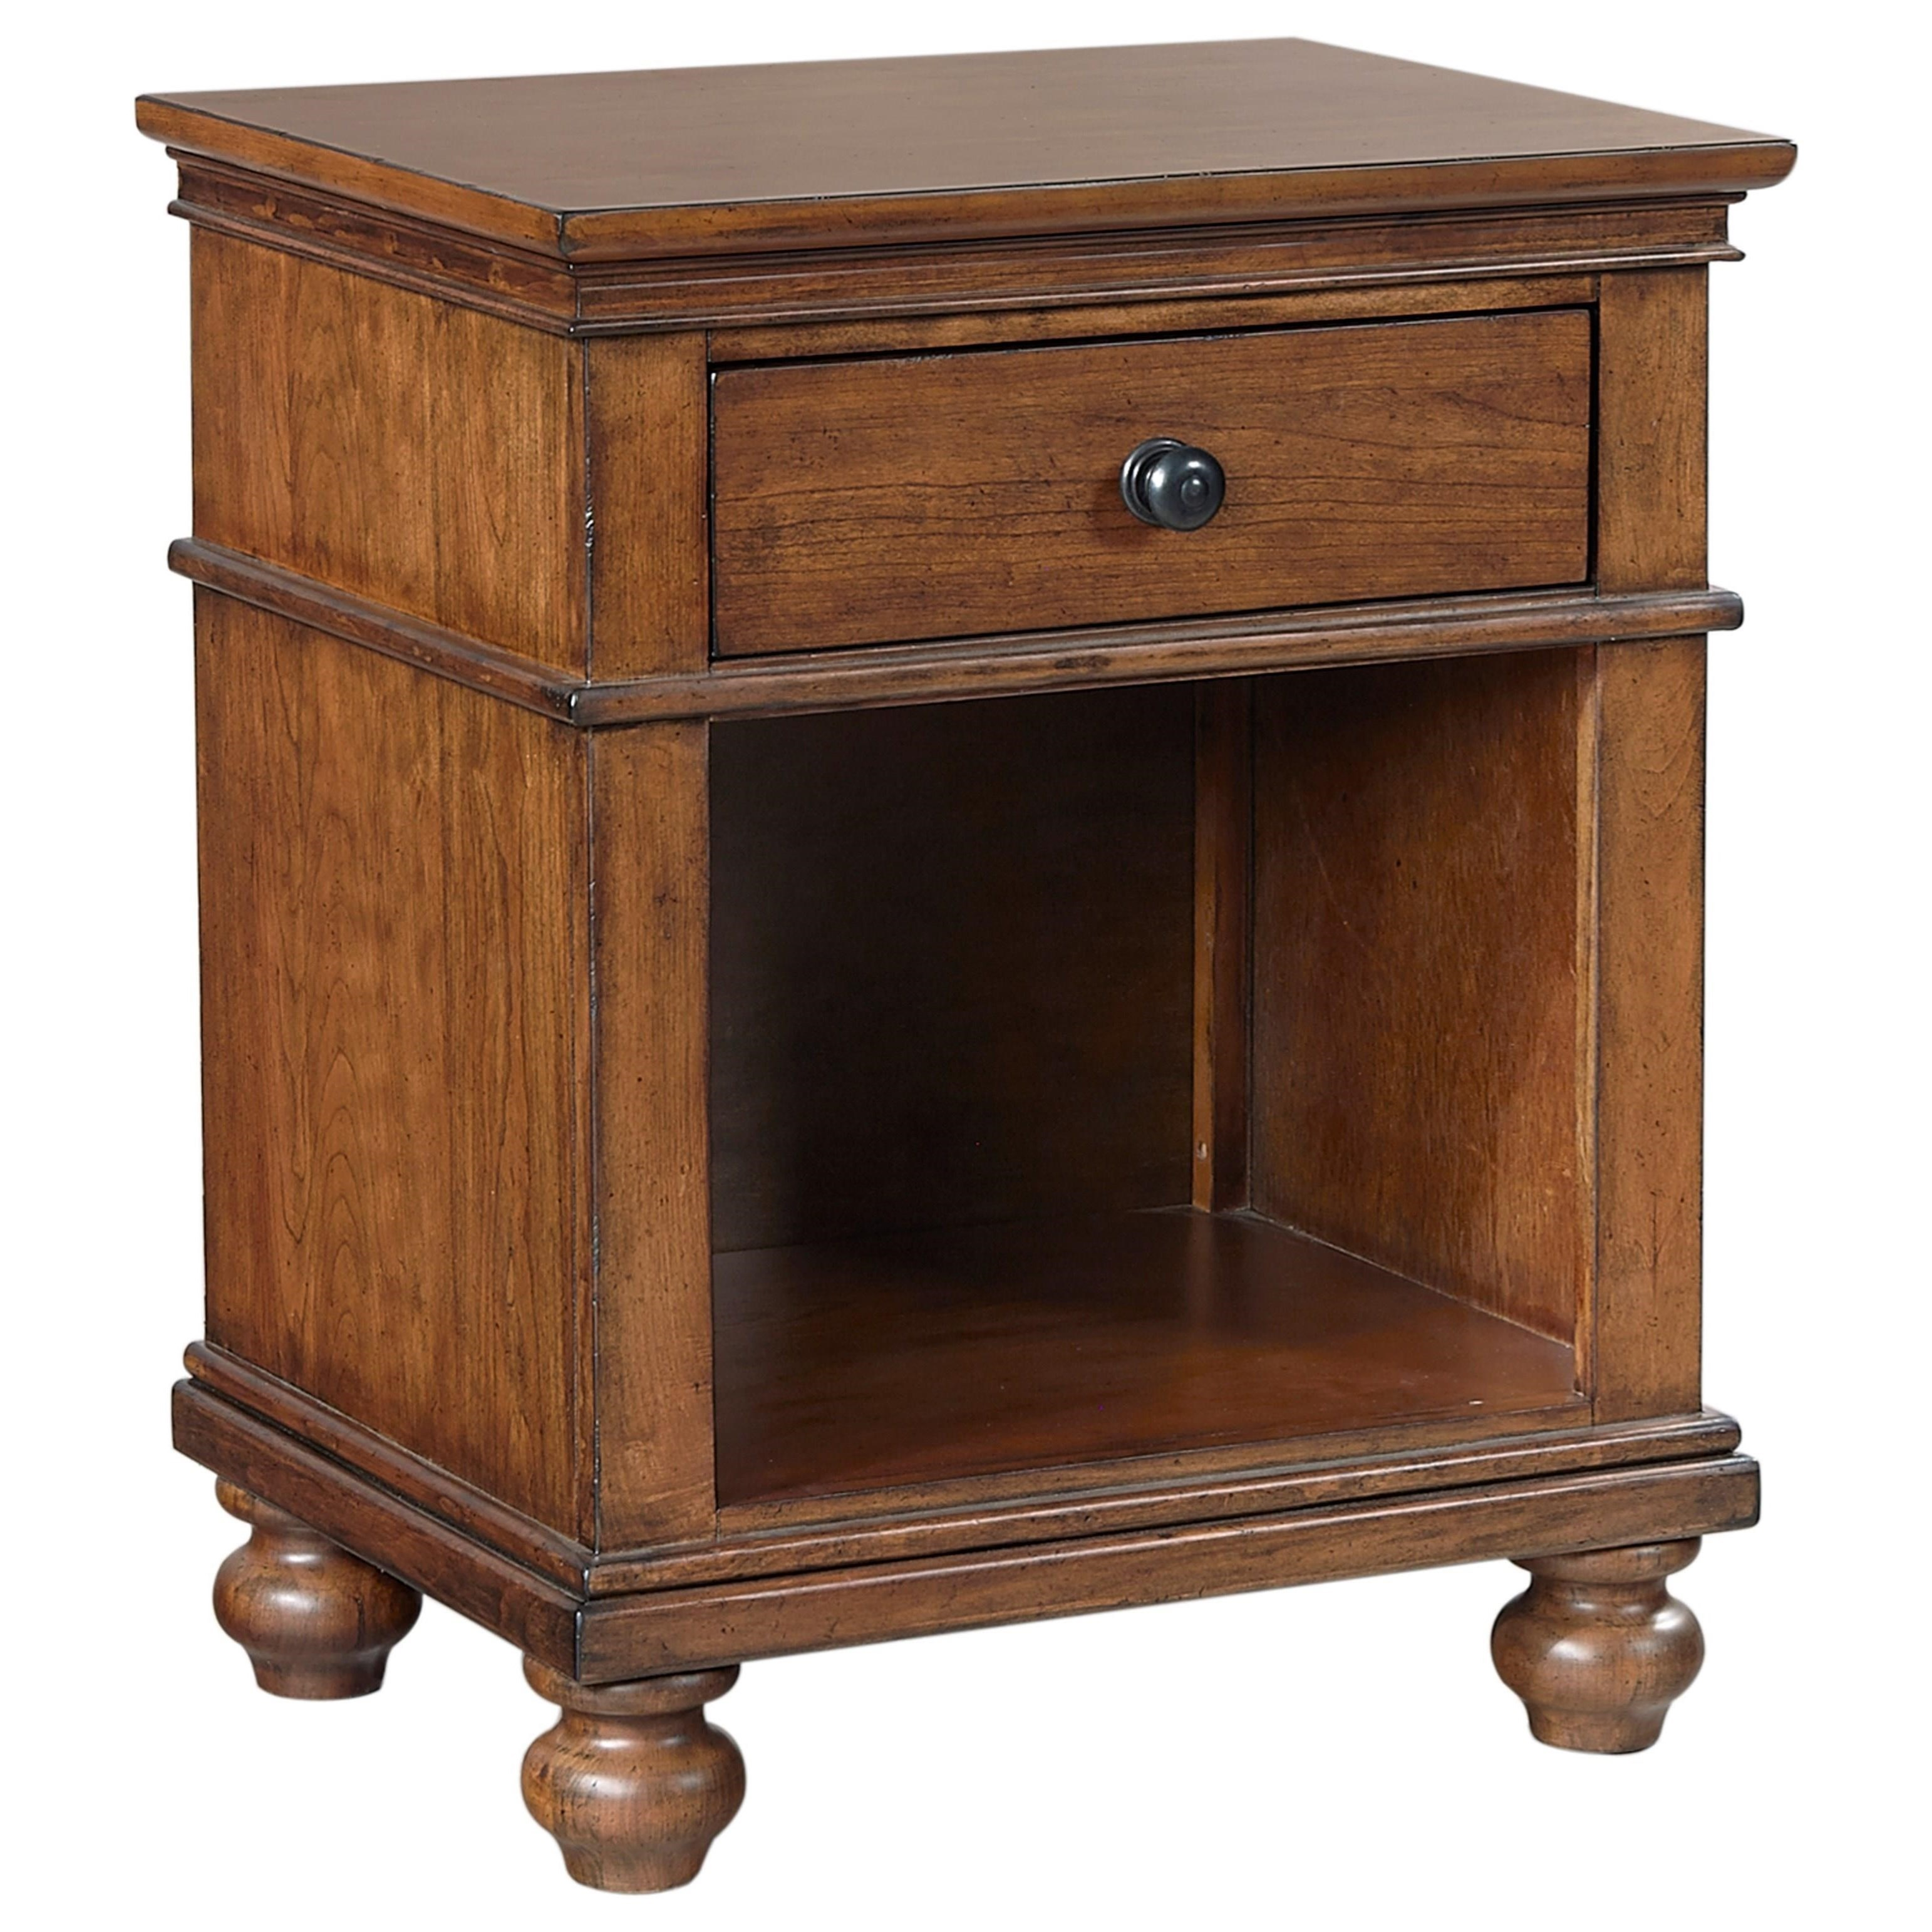 Aspenhome Oxford 1 Drawer Nightstand - Item Number: I07-451N-WBR